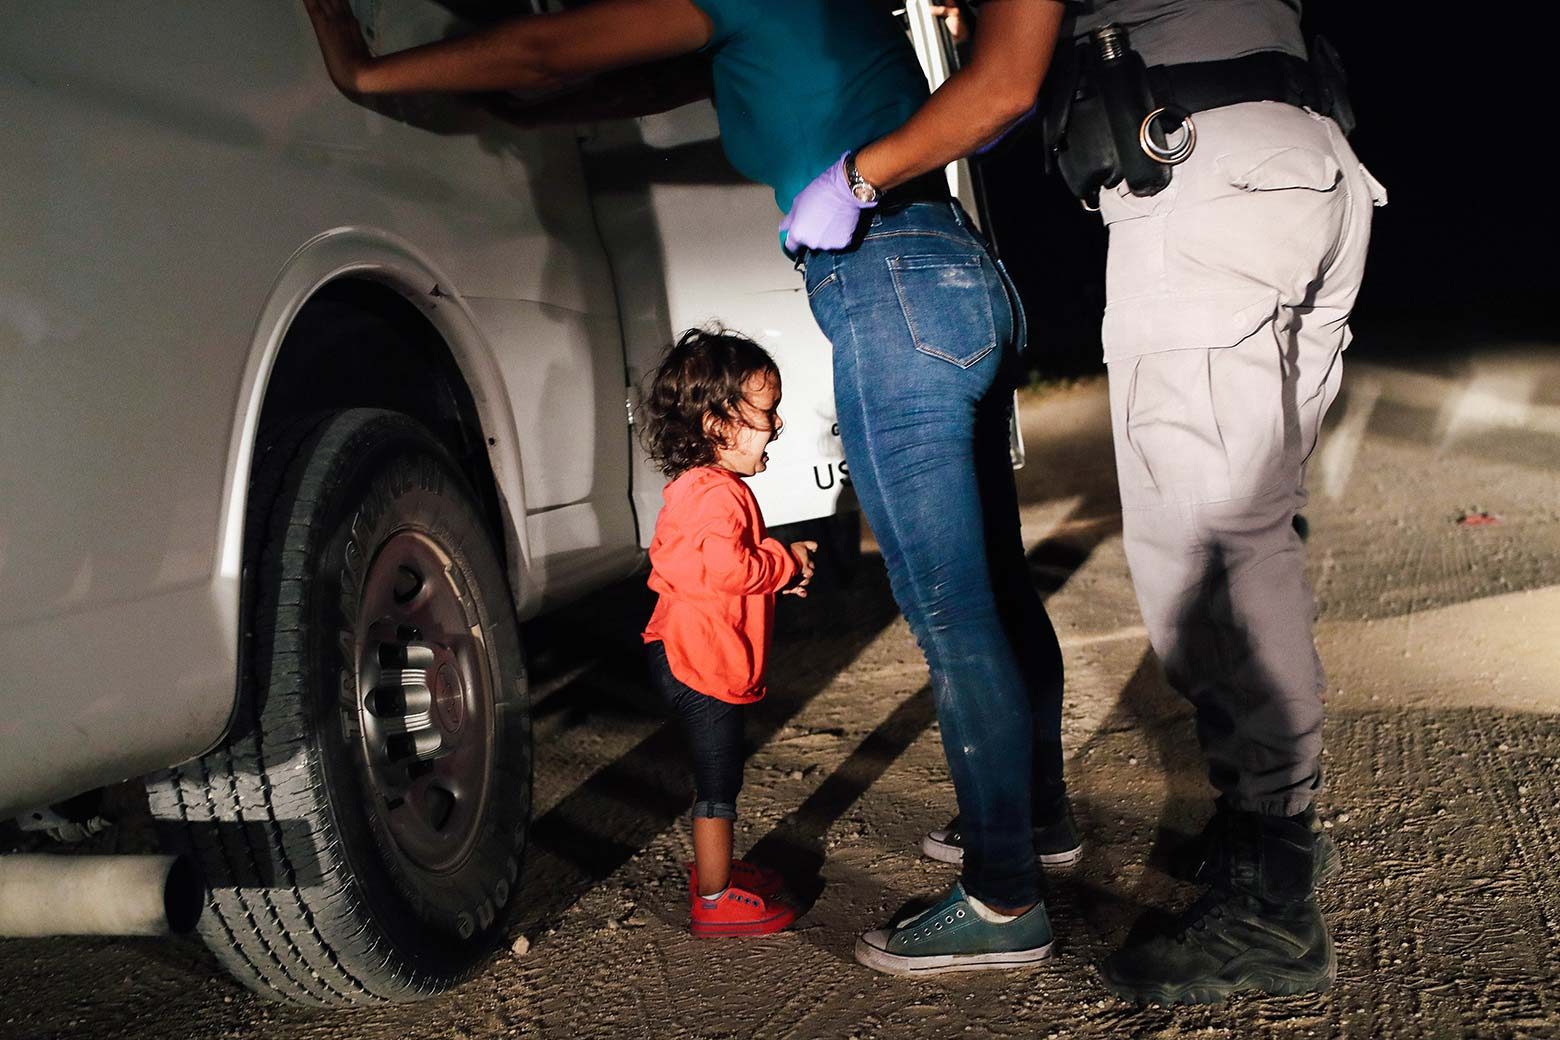 What's Going on at the Border Is Numbing, but Going Numb Is a Luxury We Can't Afford